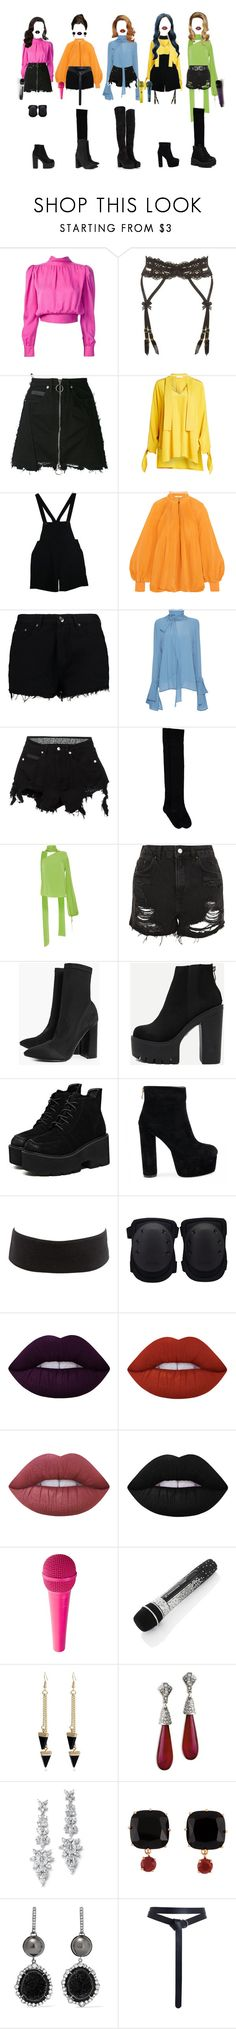 """[ live ] G-3 _ MY LOVE"" by xxeucliffexx ❤ liked on Polyvore featuring Yves Saint Laurent, Agent Provocateur, County Of Milan, Nobi Talai, American Apparel, TIBI, Boohoo, Marni, Emilio Pucci and Charlotte Russe"